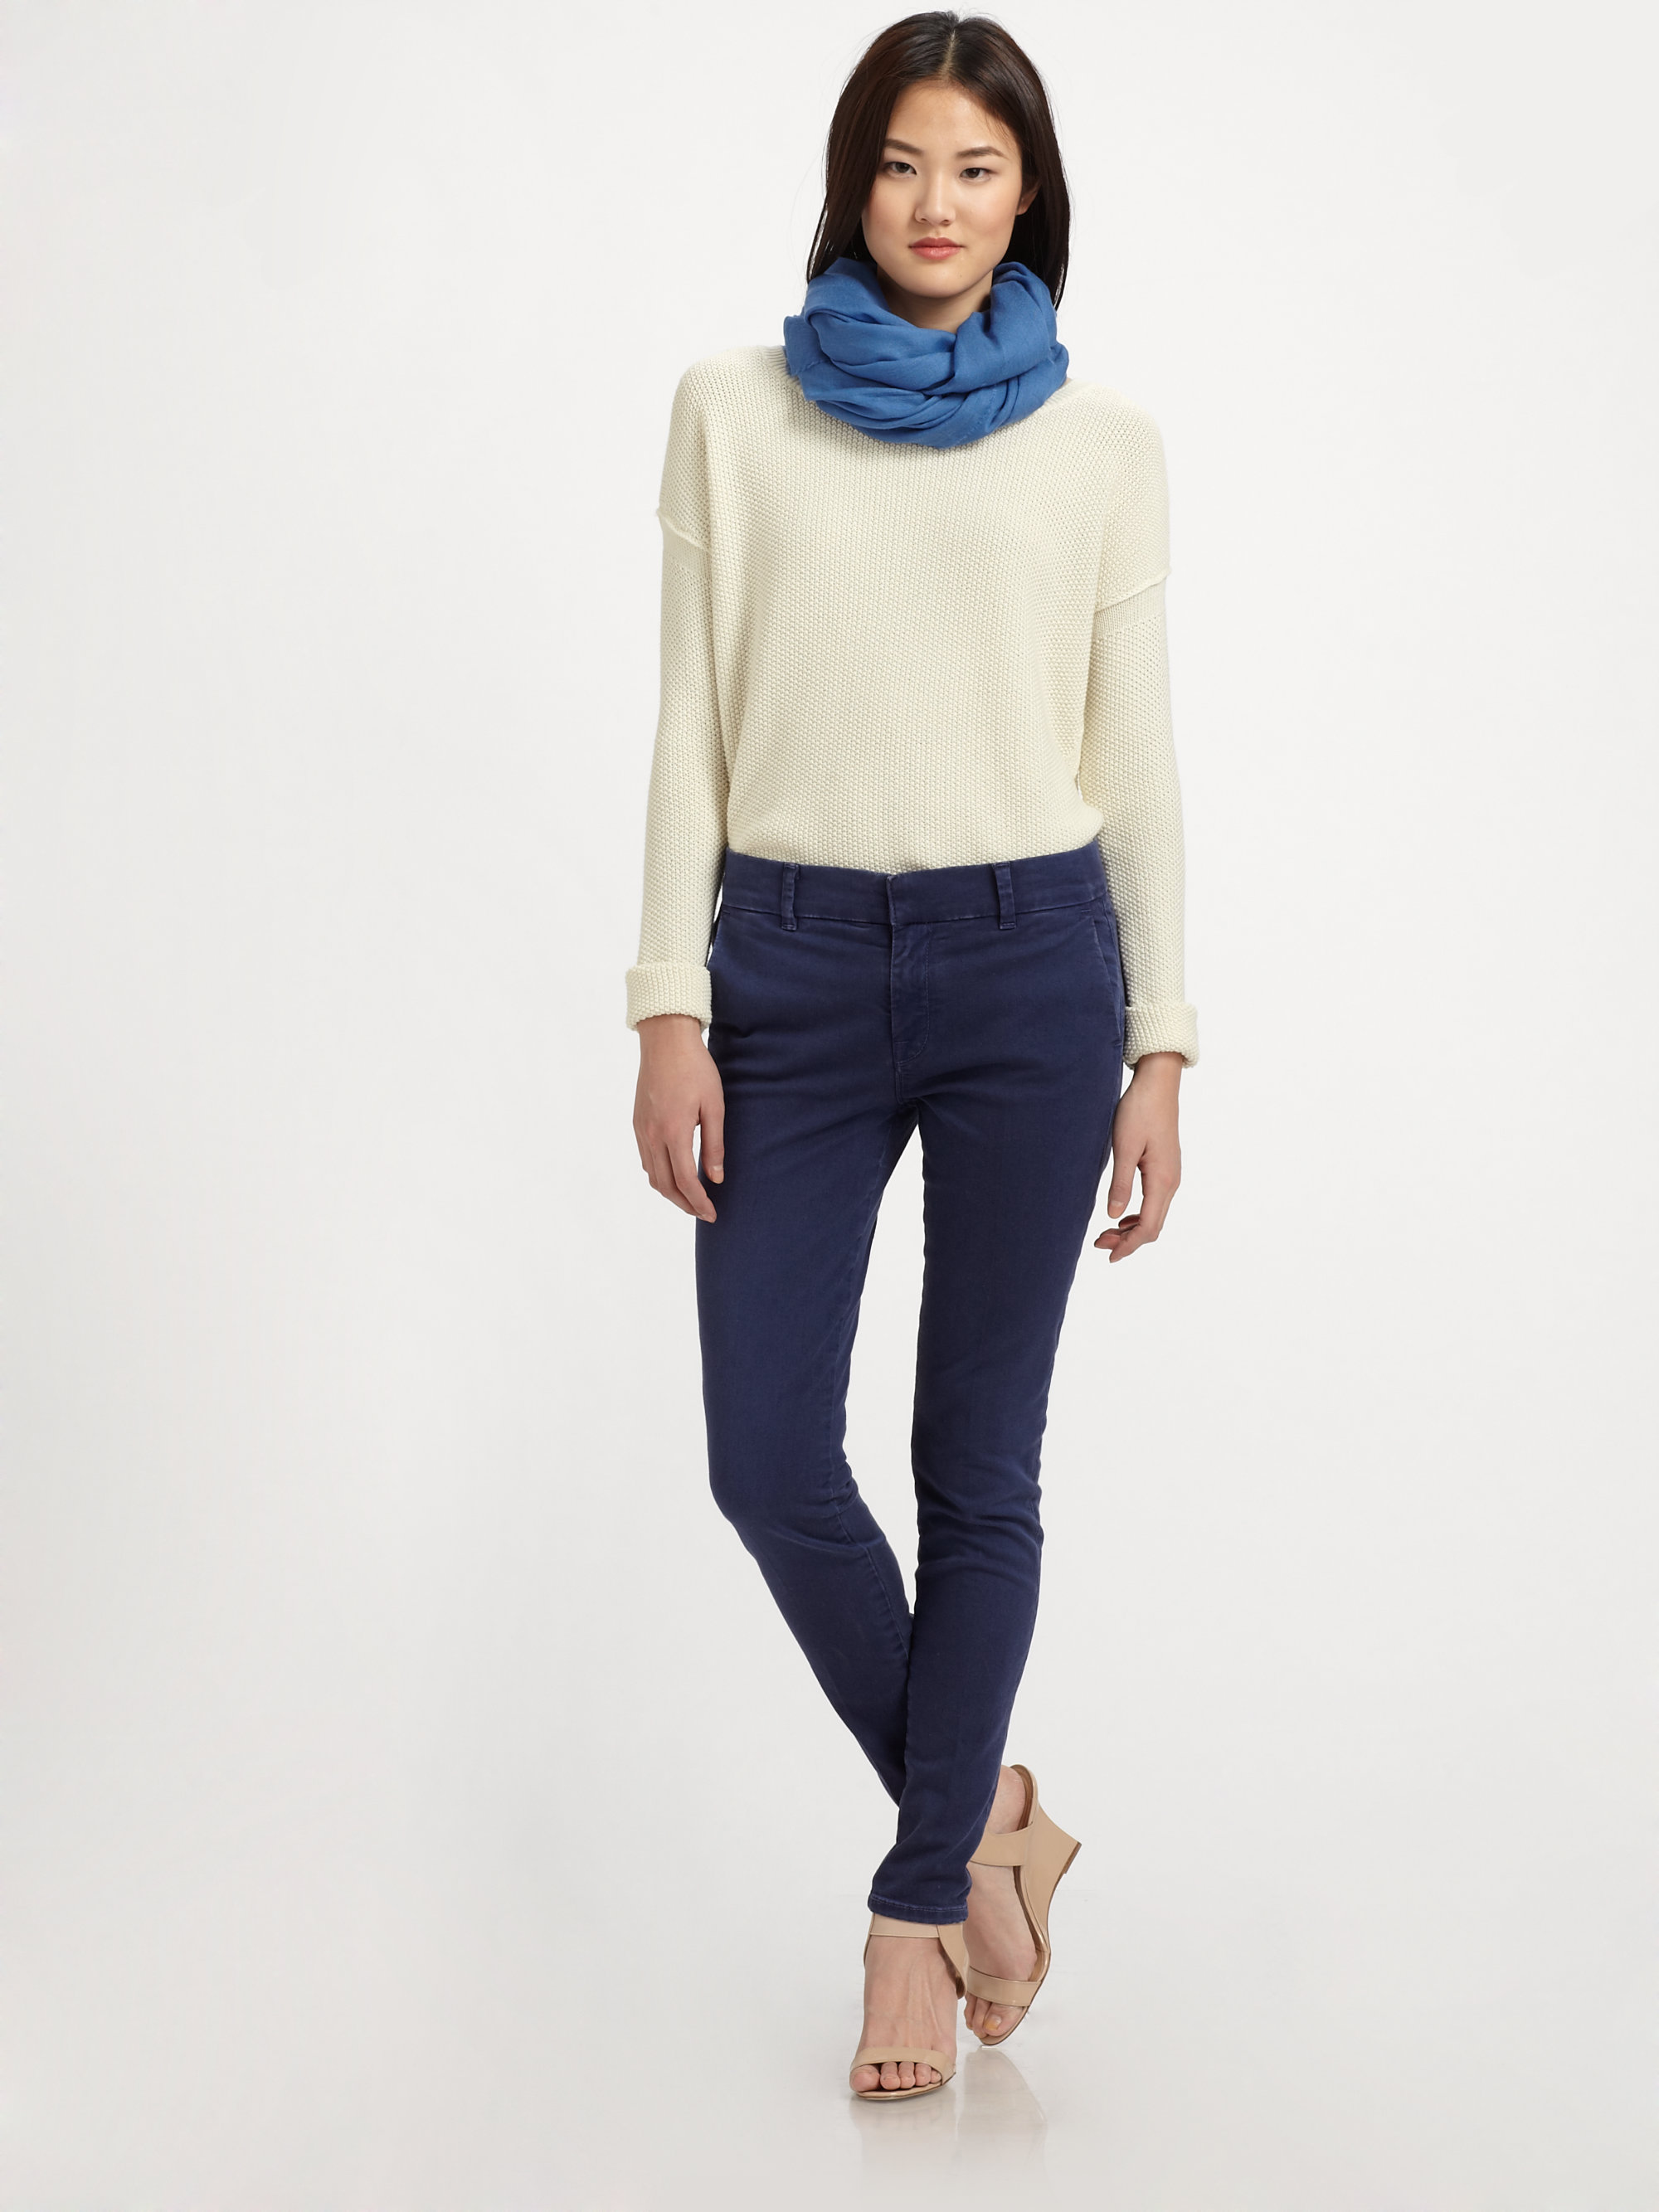 Vince Cotton Cashmere Crewneck Sweater in Gray   Lyst